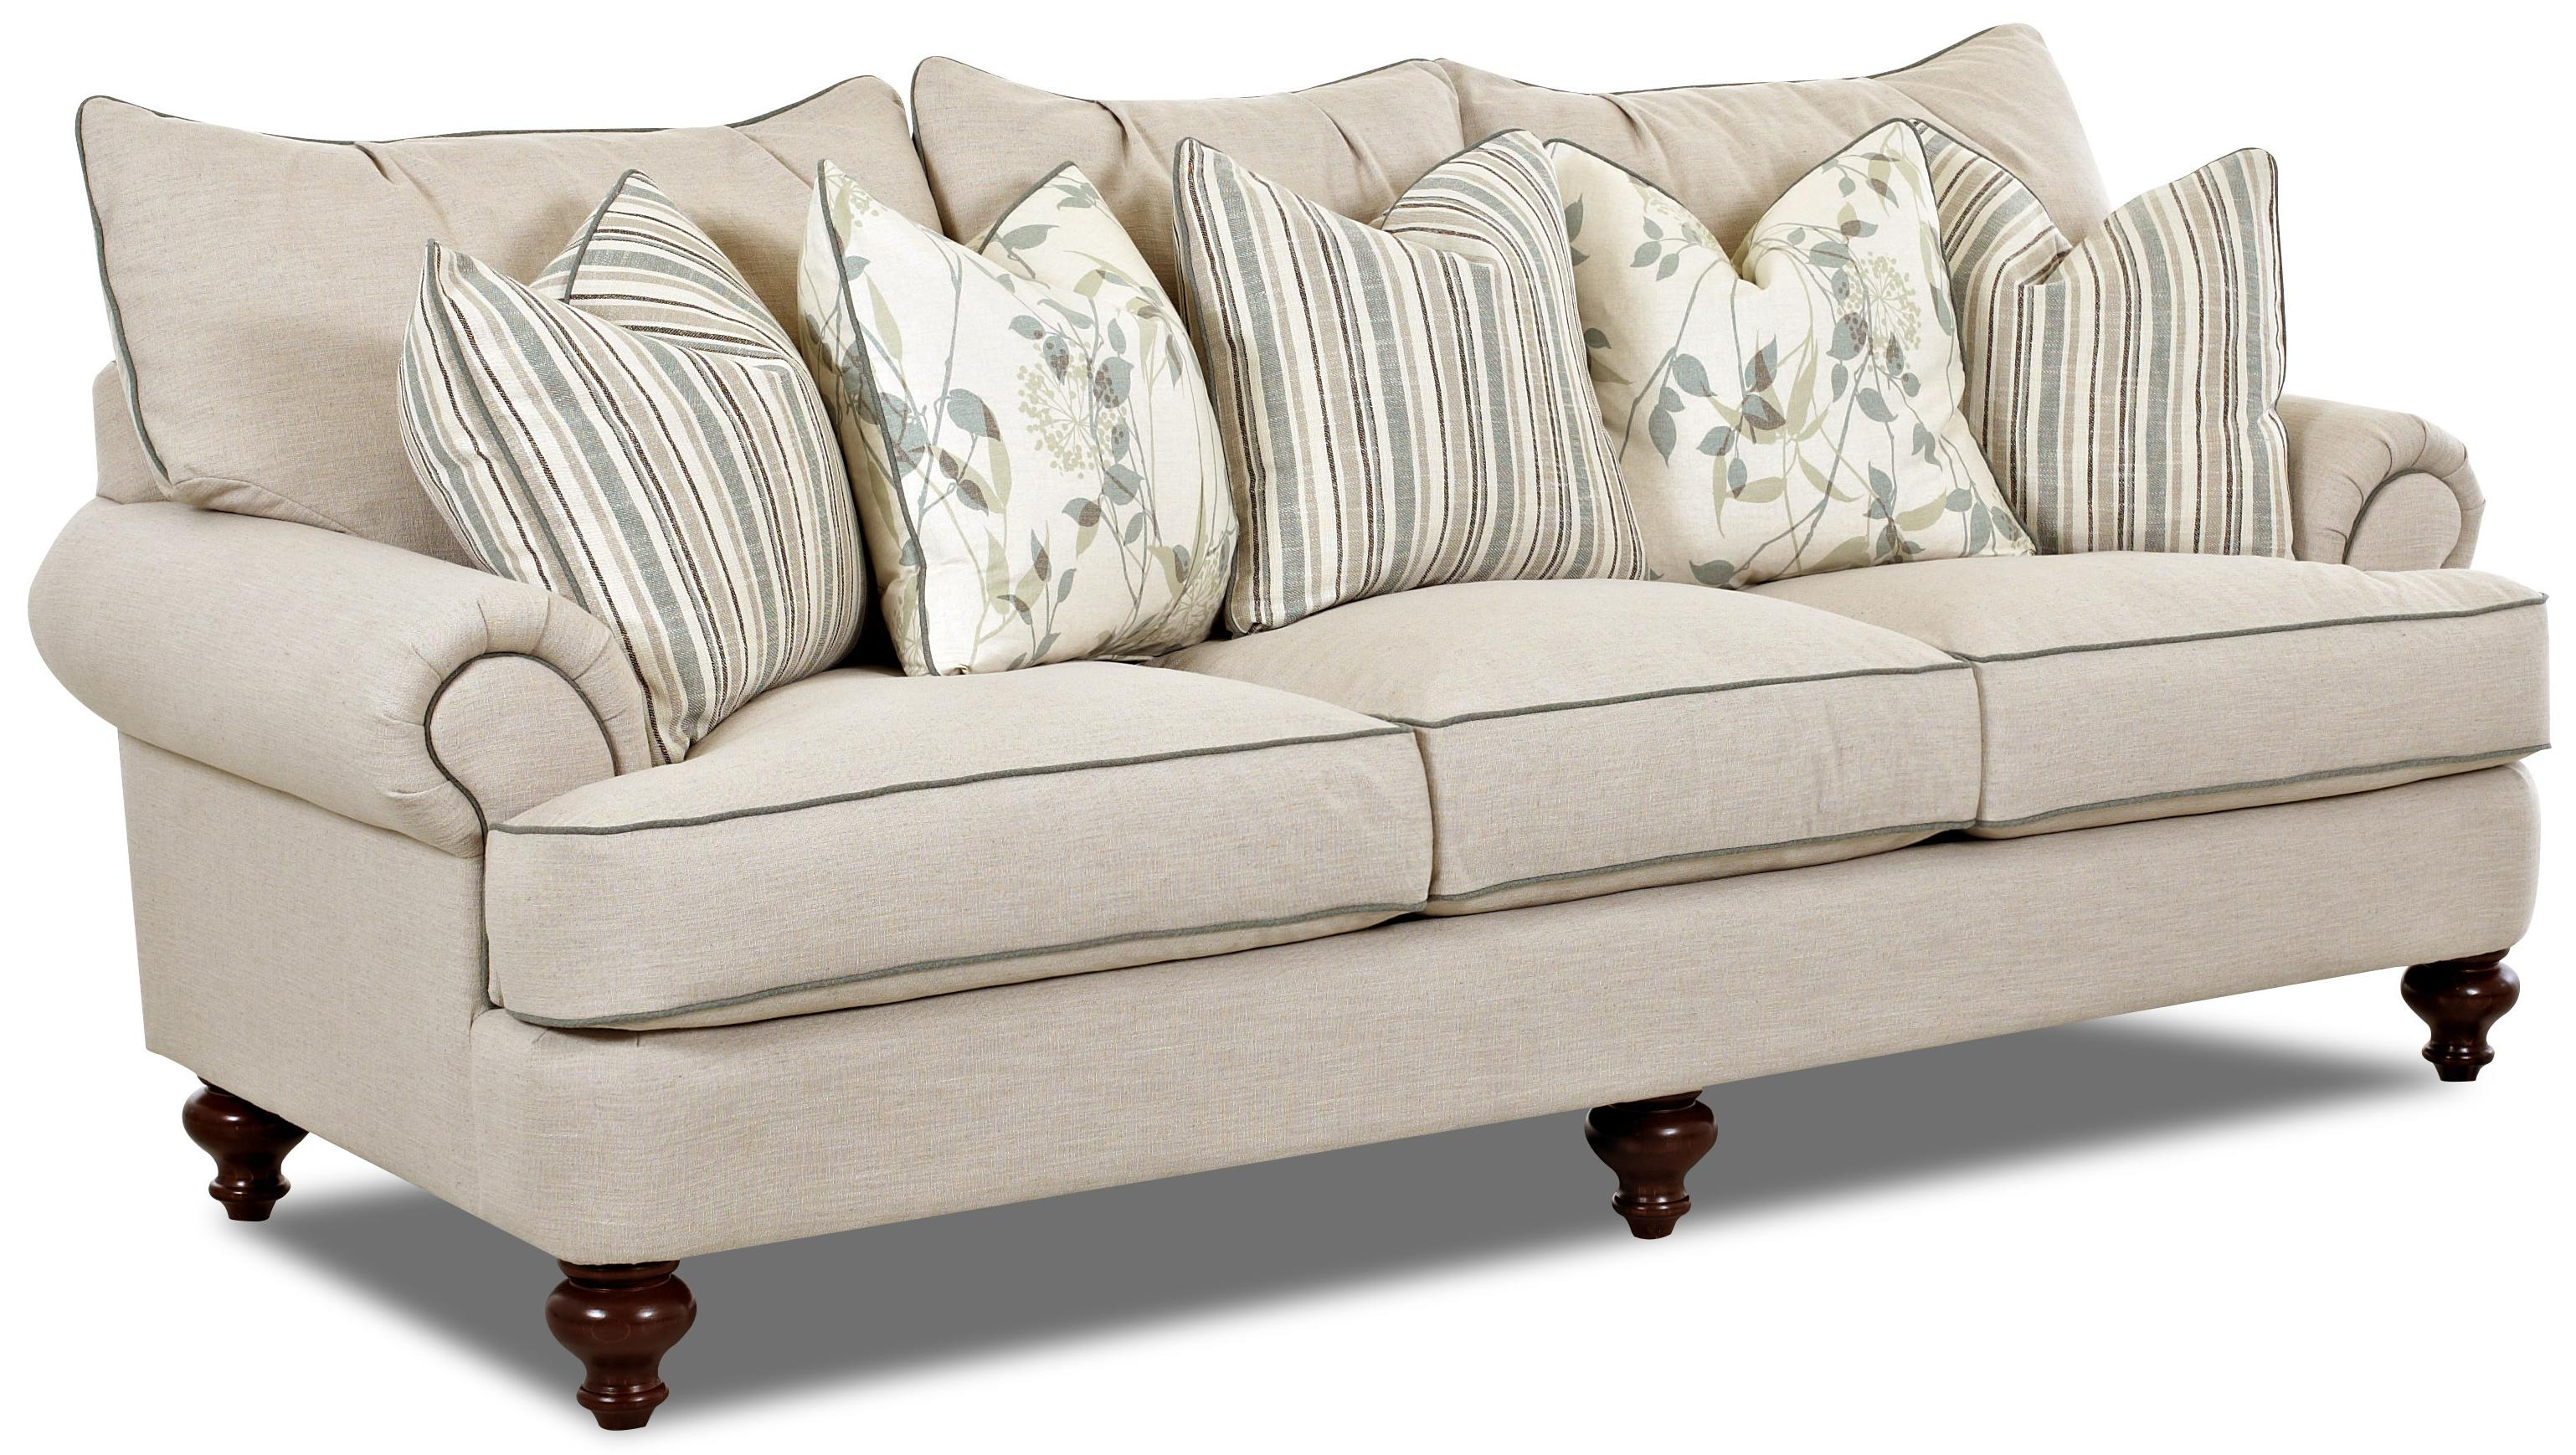 Couch Shabby Chic Sofa Shabby Cozy Shabby Chic Furniture Ideas For Your Home Top